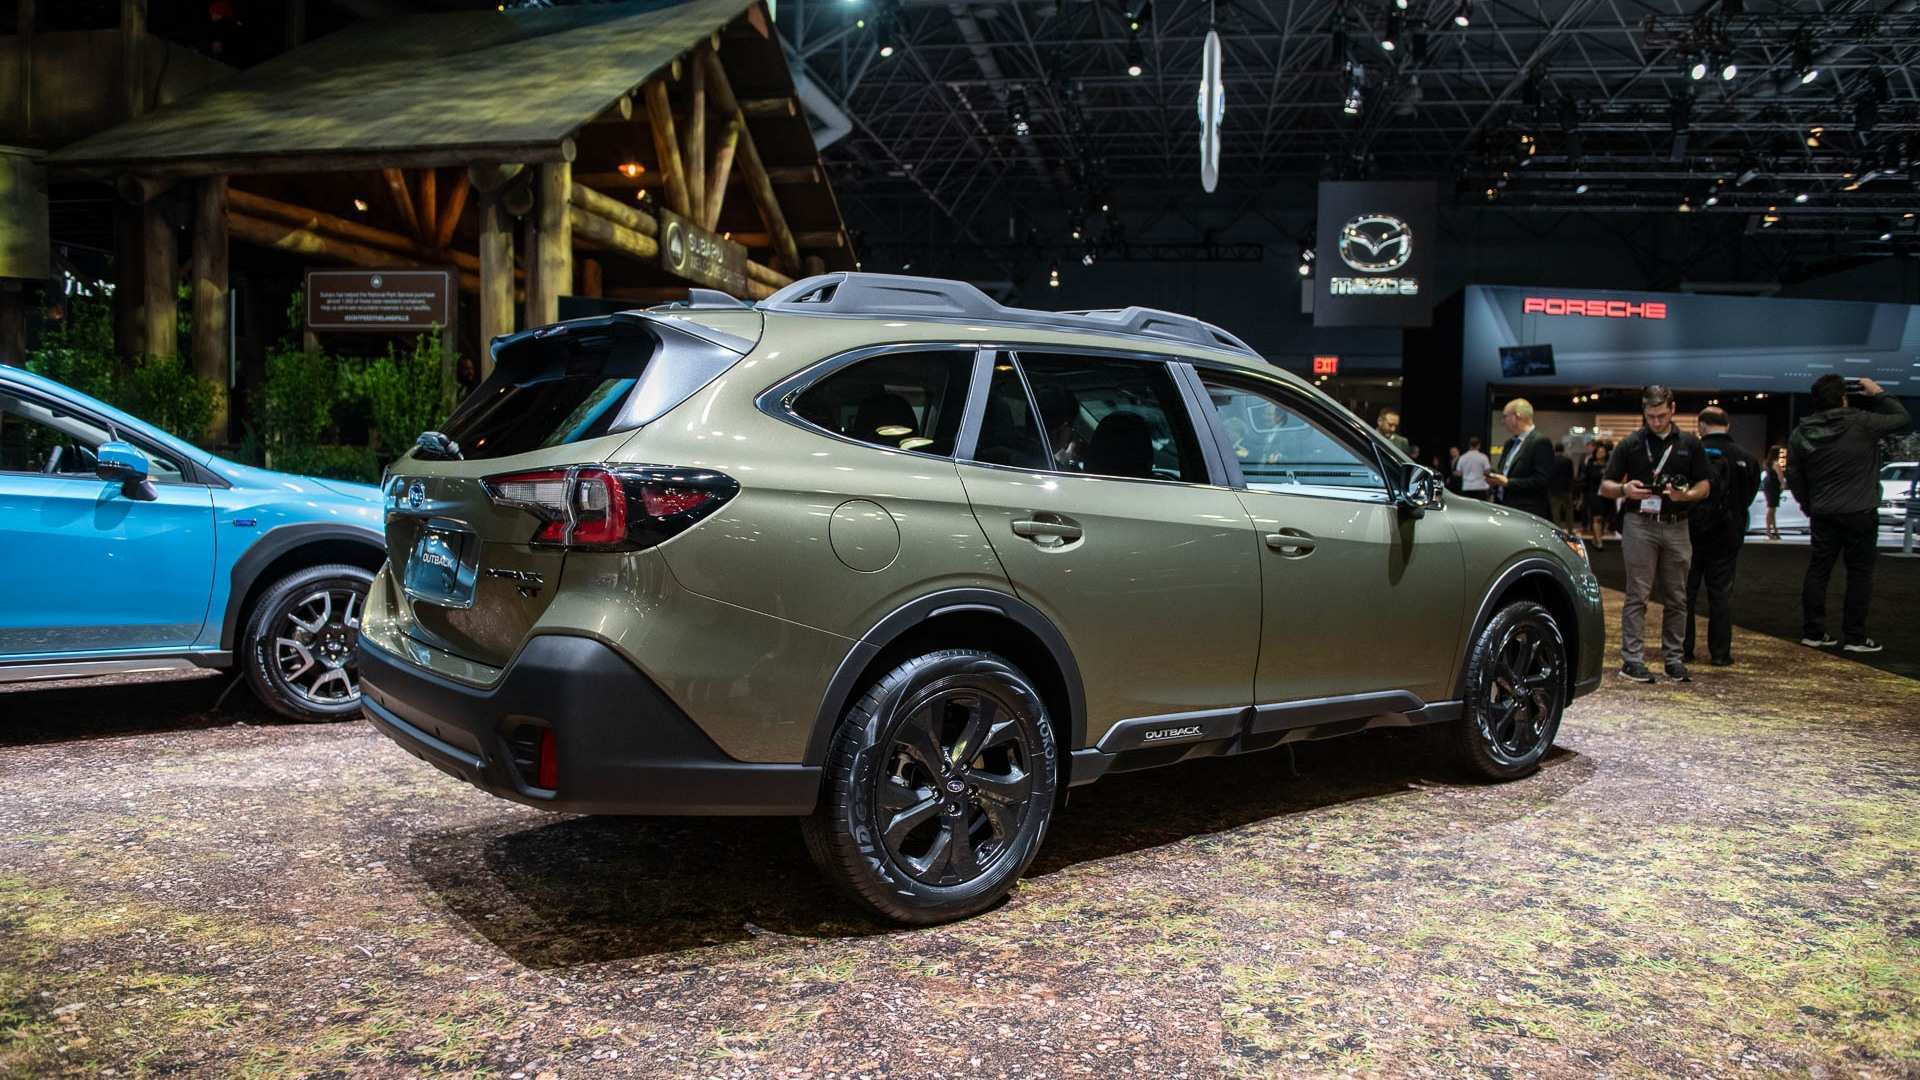 94 The Best Subaru Outback 2020 Japan Release Date